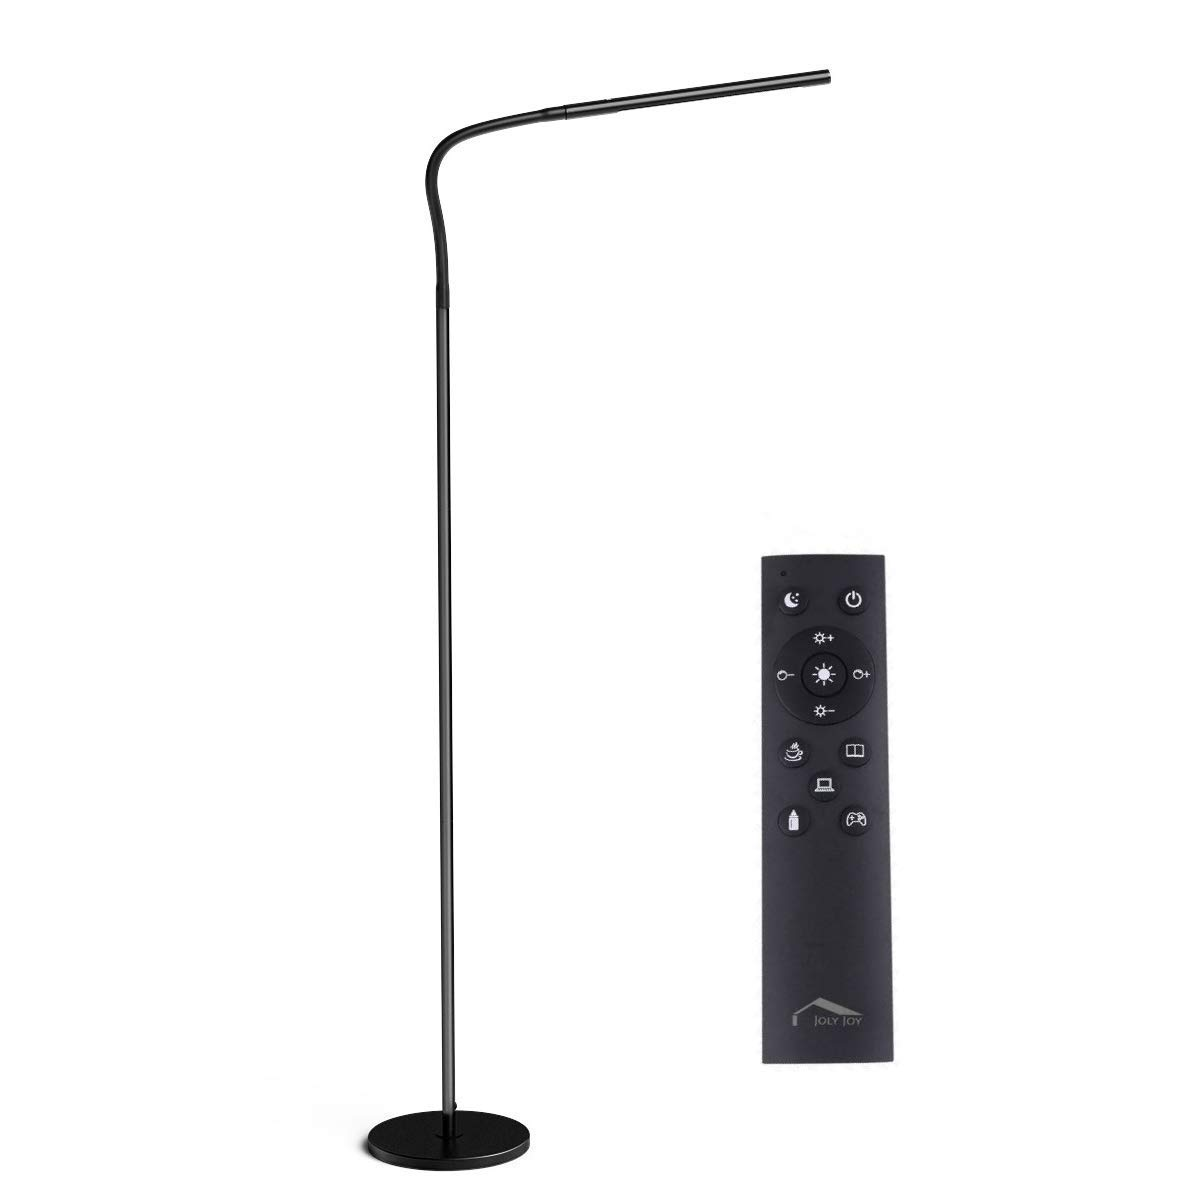 Joly Joly Floor lamp, 12W Dimmable LED Modern Standing Lamp with Touch & Remote Control, Flexible Gooseneck Reading Lamp for Home, Living Room, Office, Desk